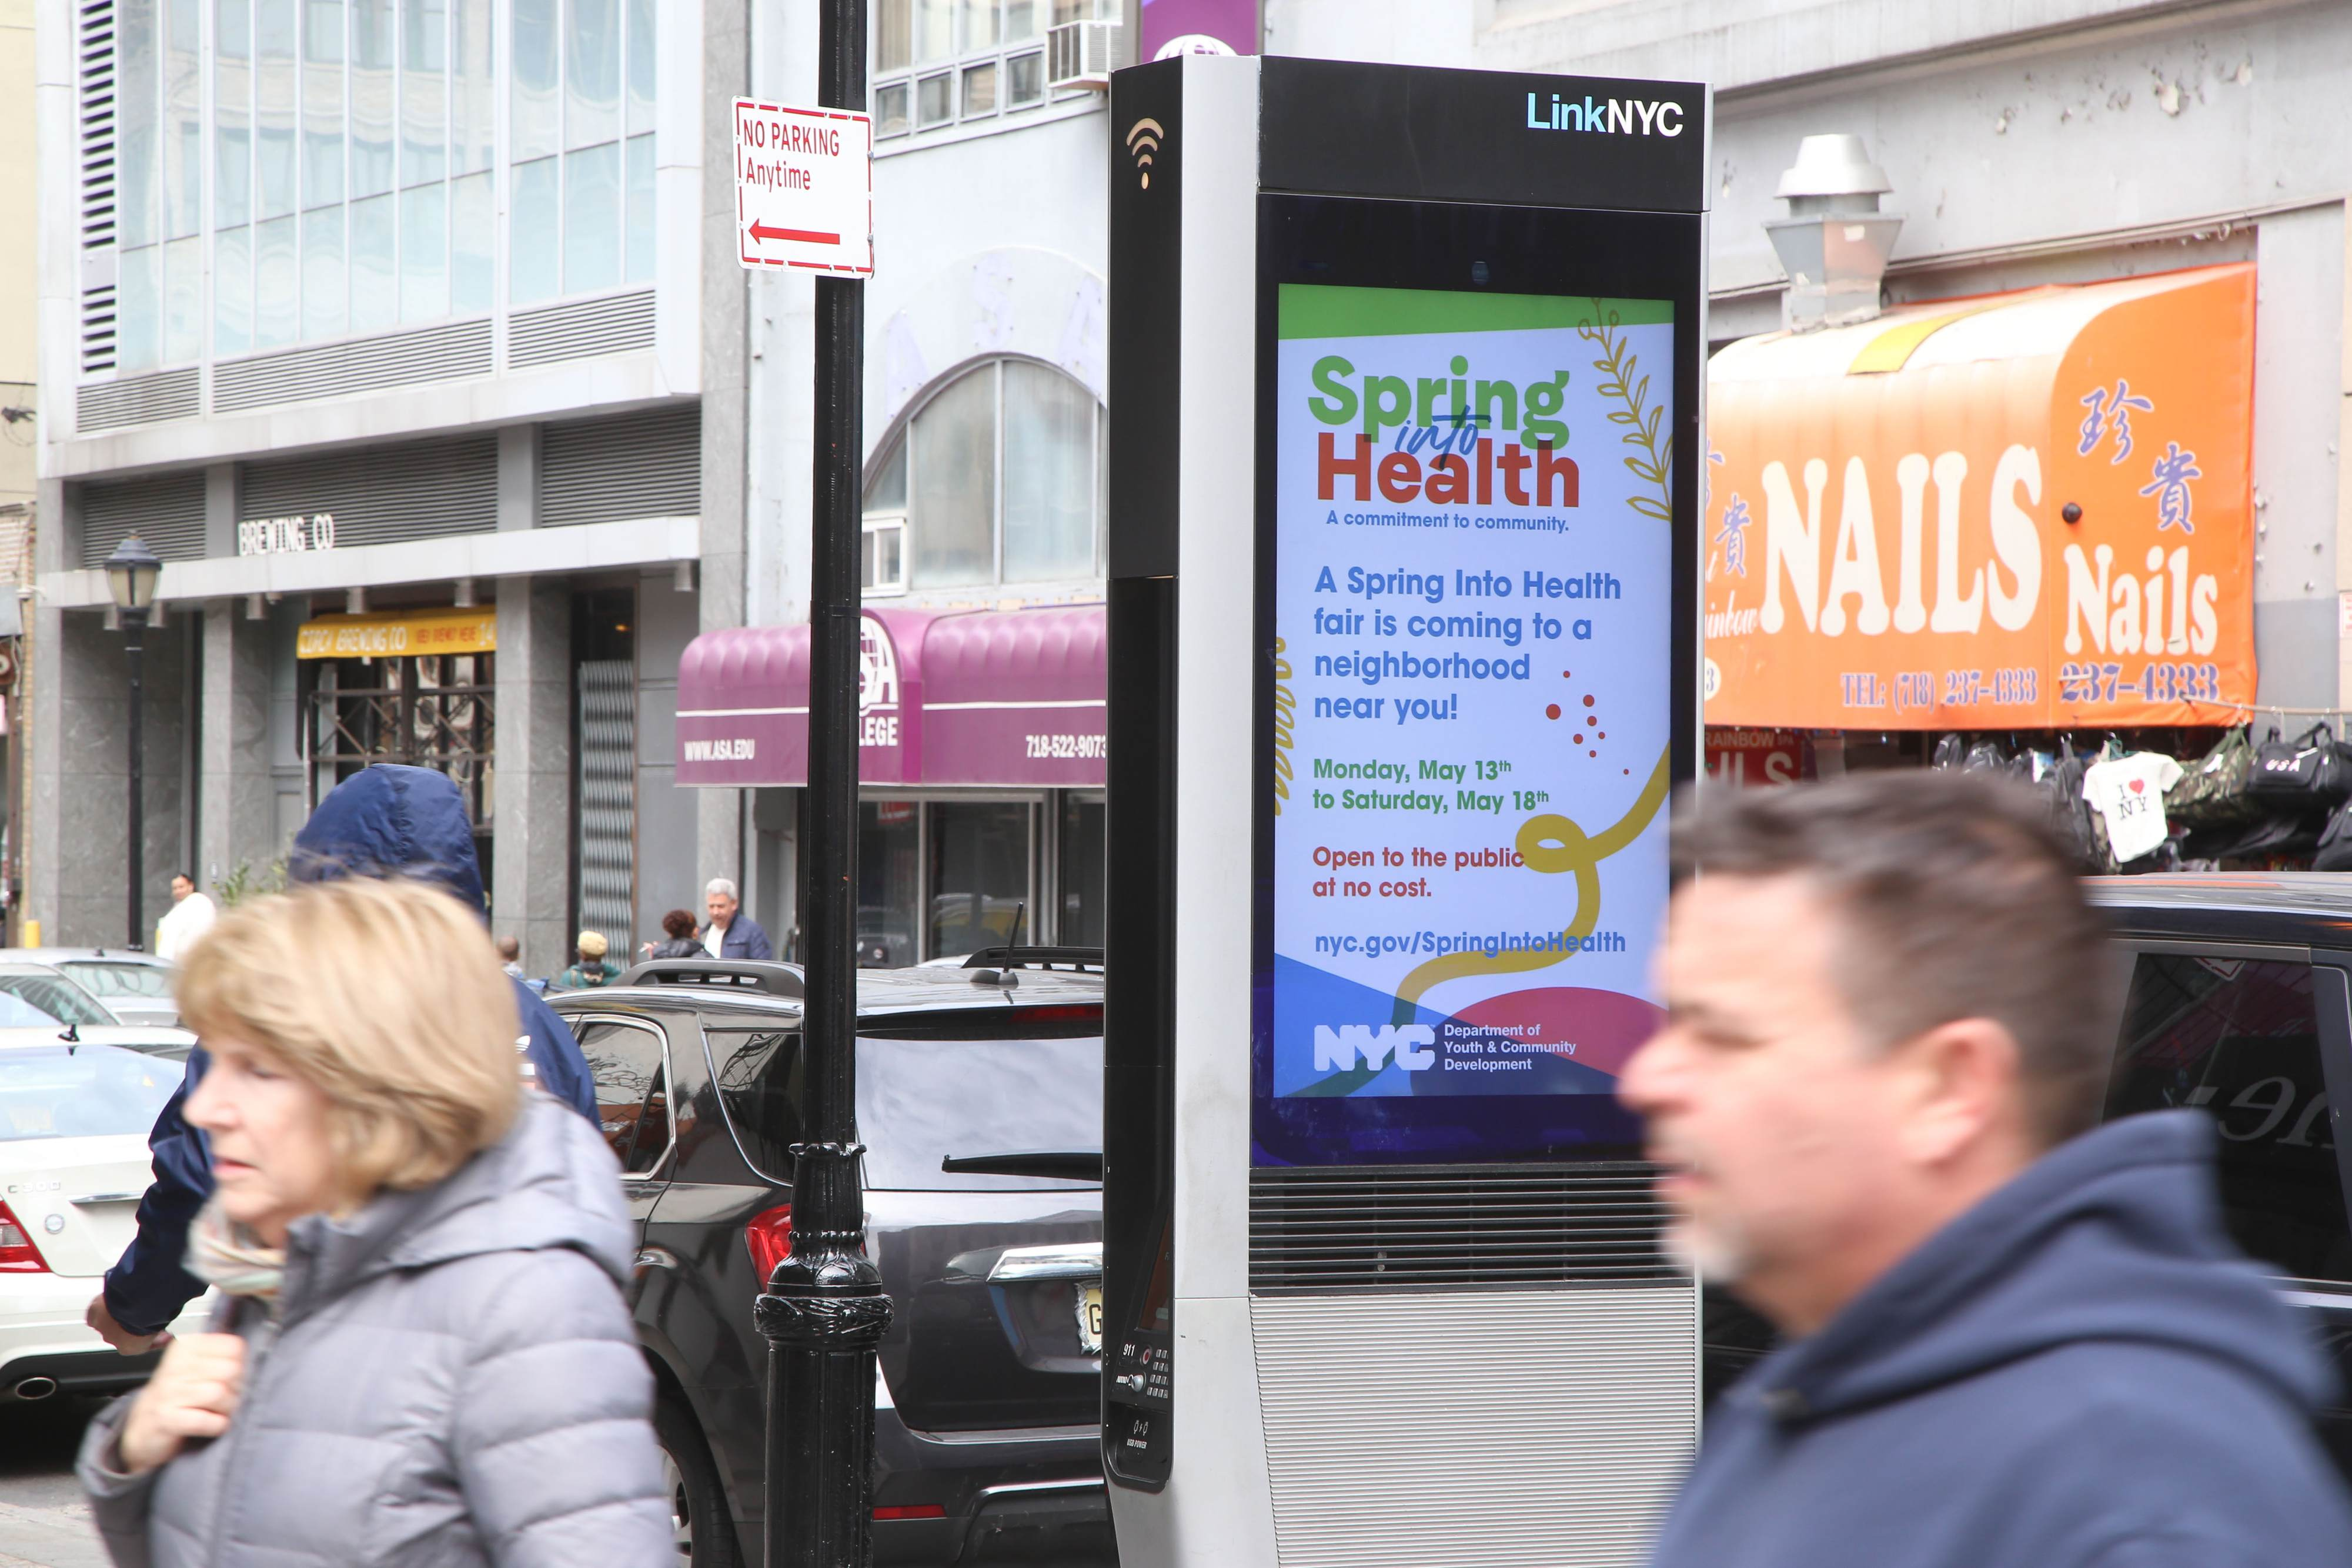 A LinkNYC kiosk displaying the DYCD Spring Into Health Fair advertisement.